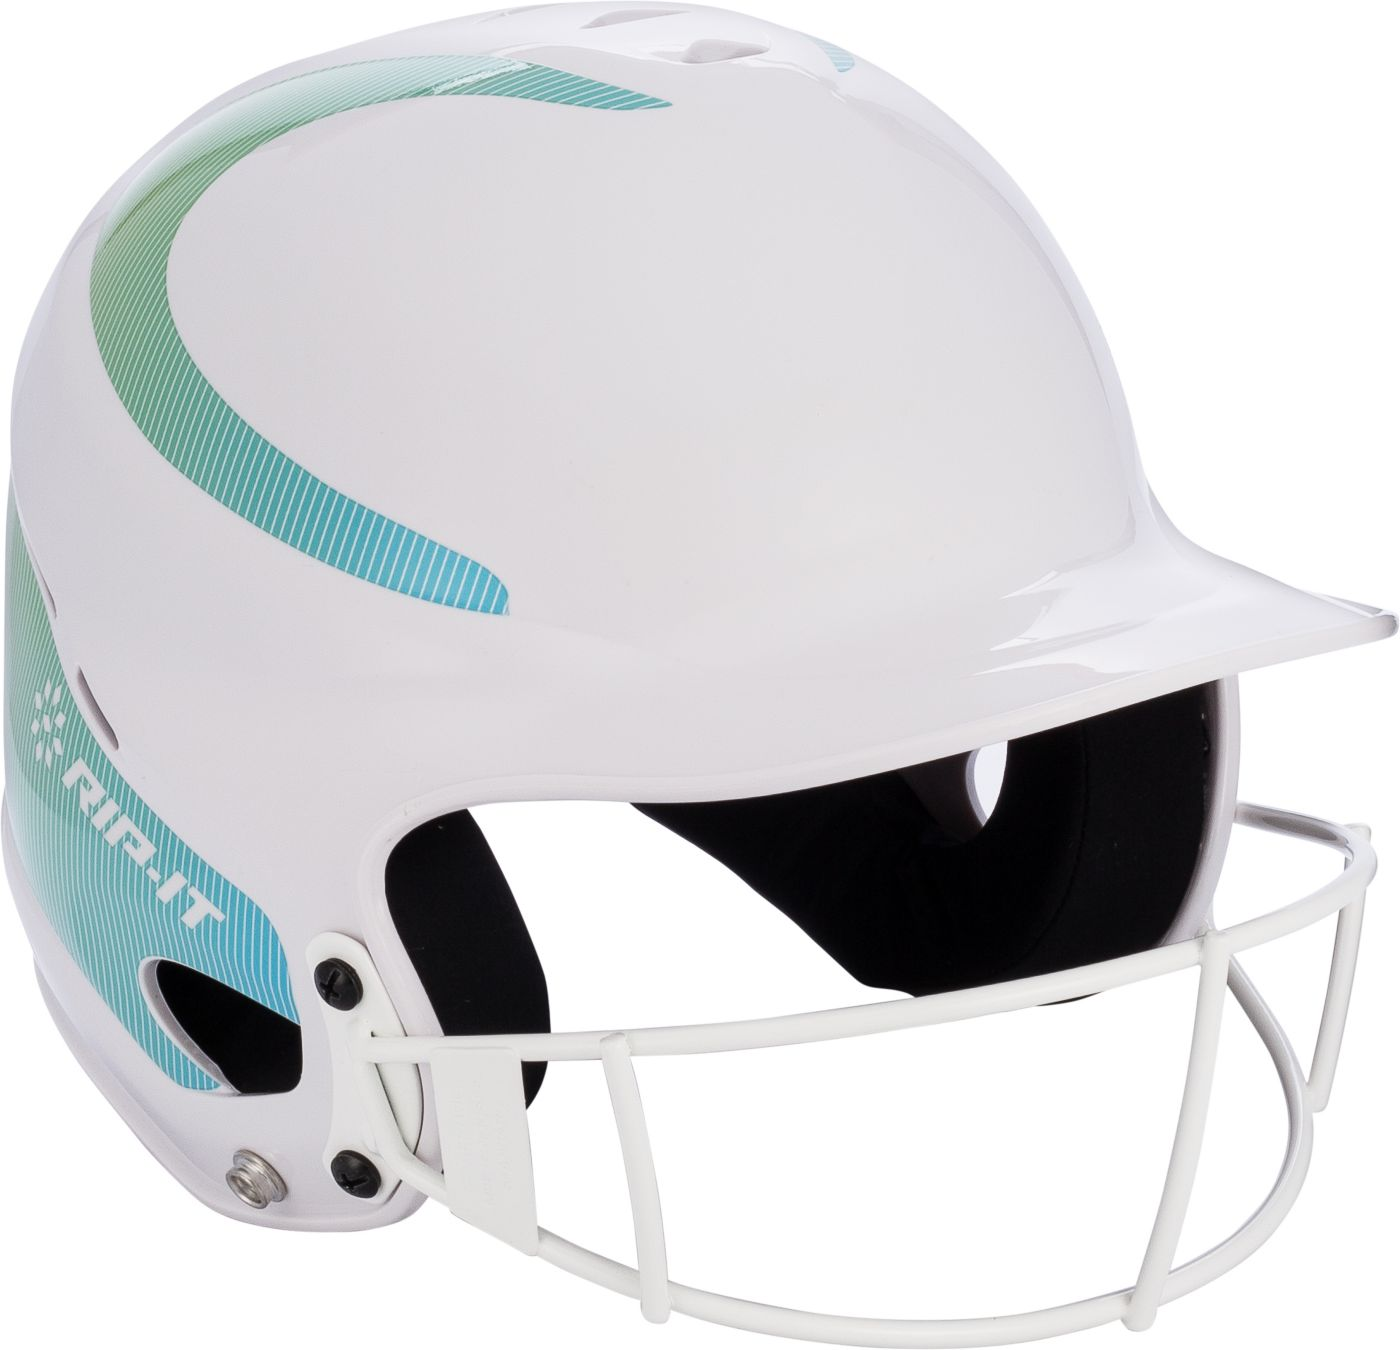 RIP-IT Vision Pinstripe Fastpitch Batting Helmet